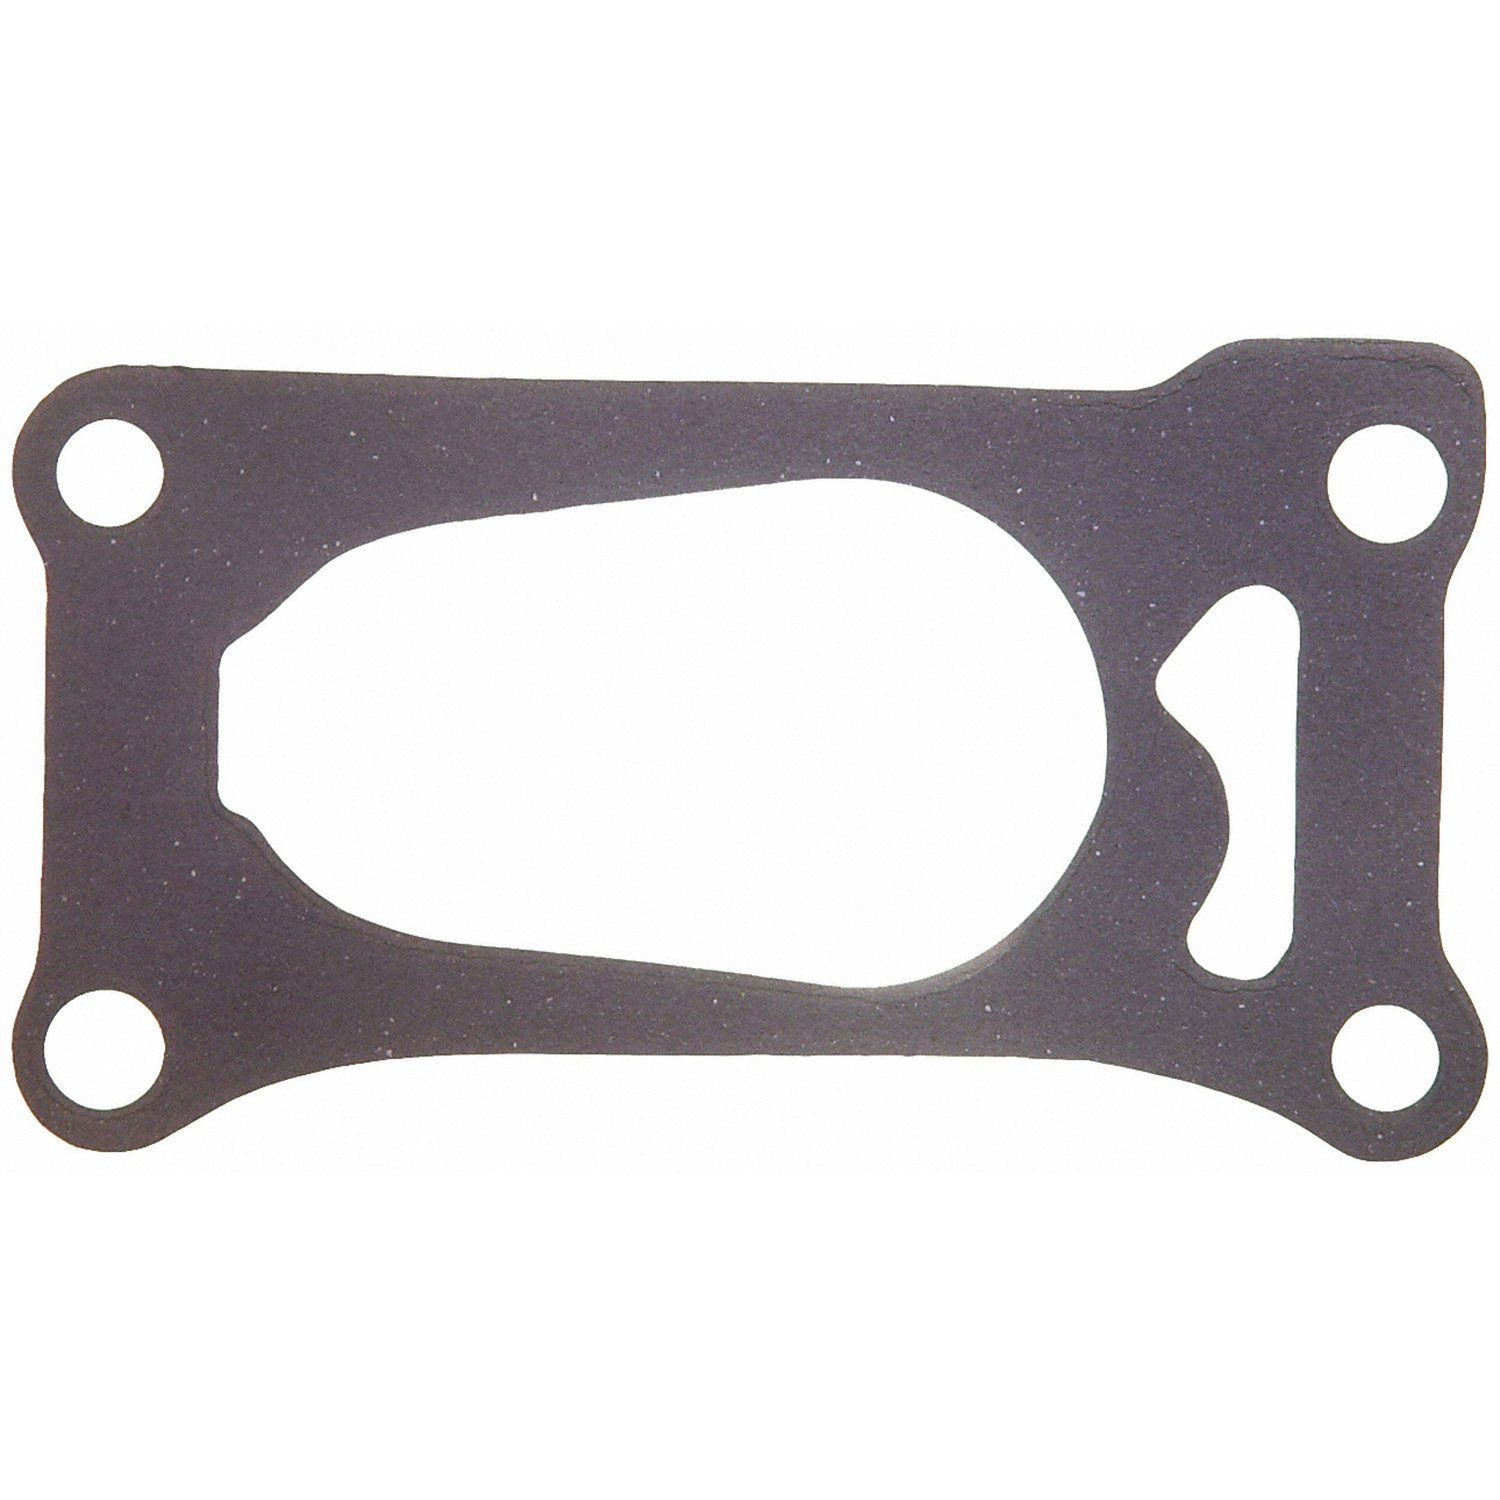 Fel-Pro ES 70486 Carburetor Mounting Gasket Set